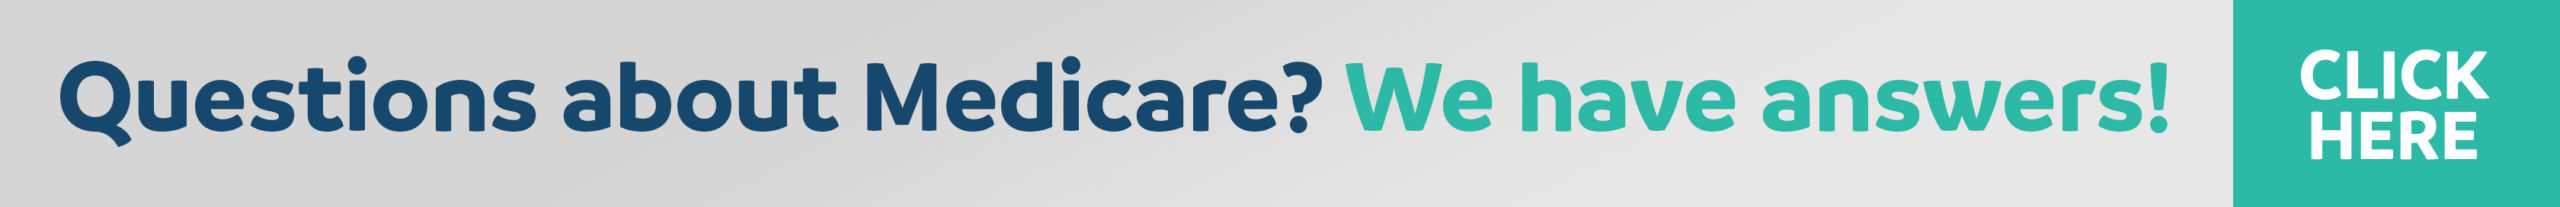 Questions about Medicare, click here to learn how we can help